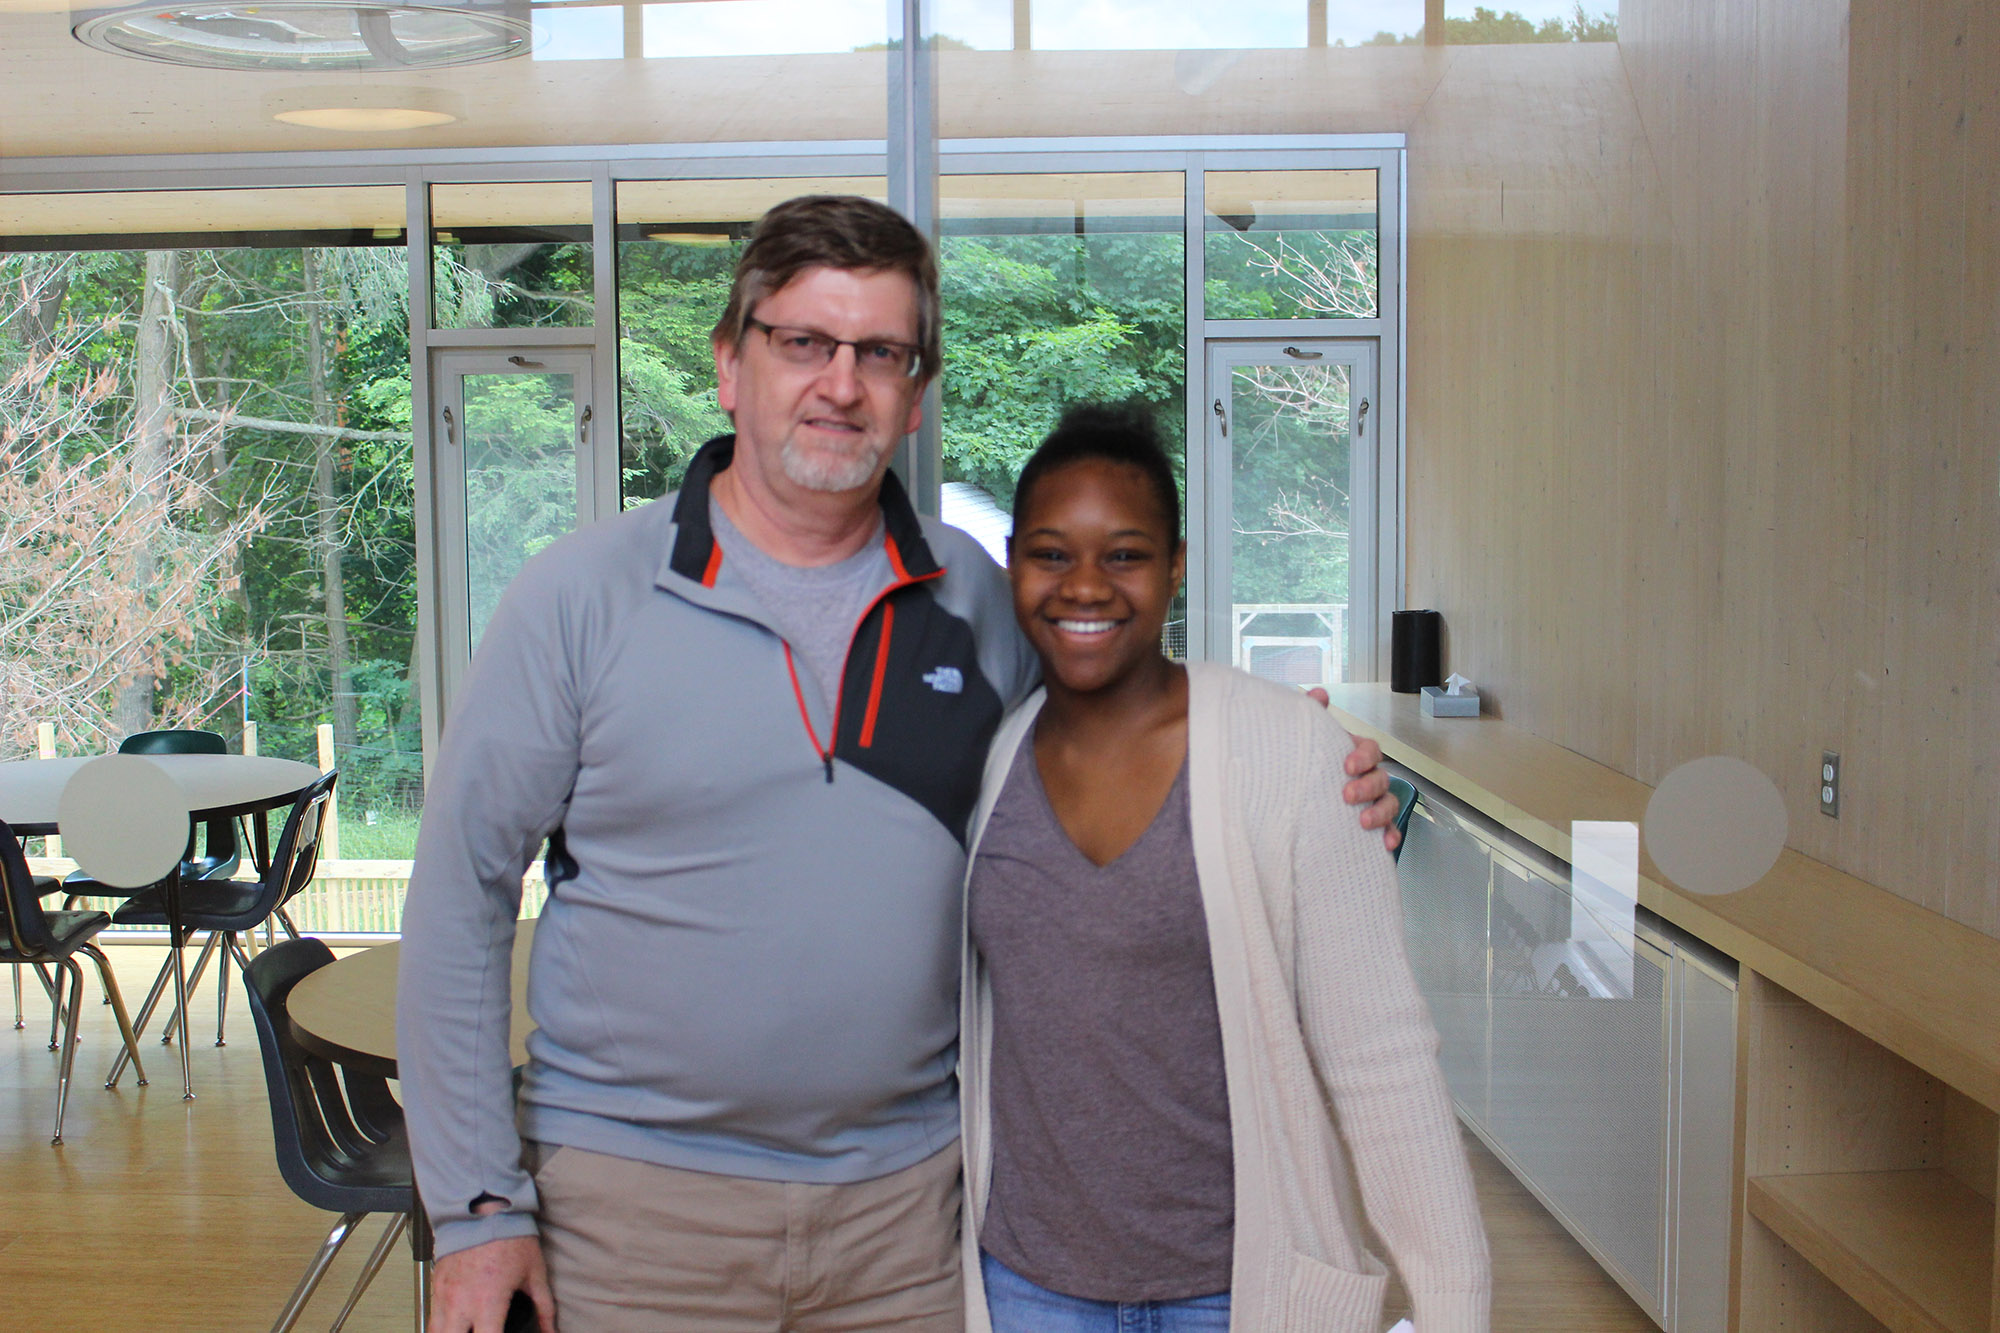 Taylor and Mr. Kelahan in Common Ground's new school building.